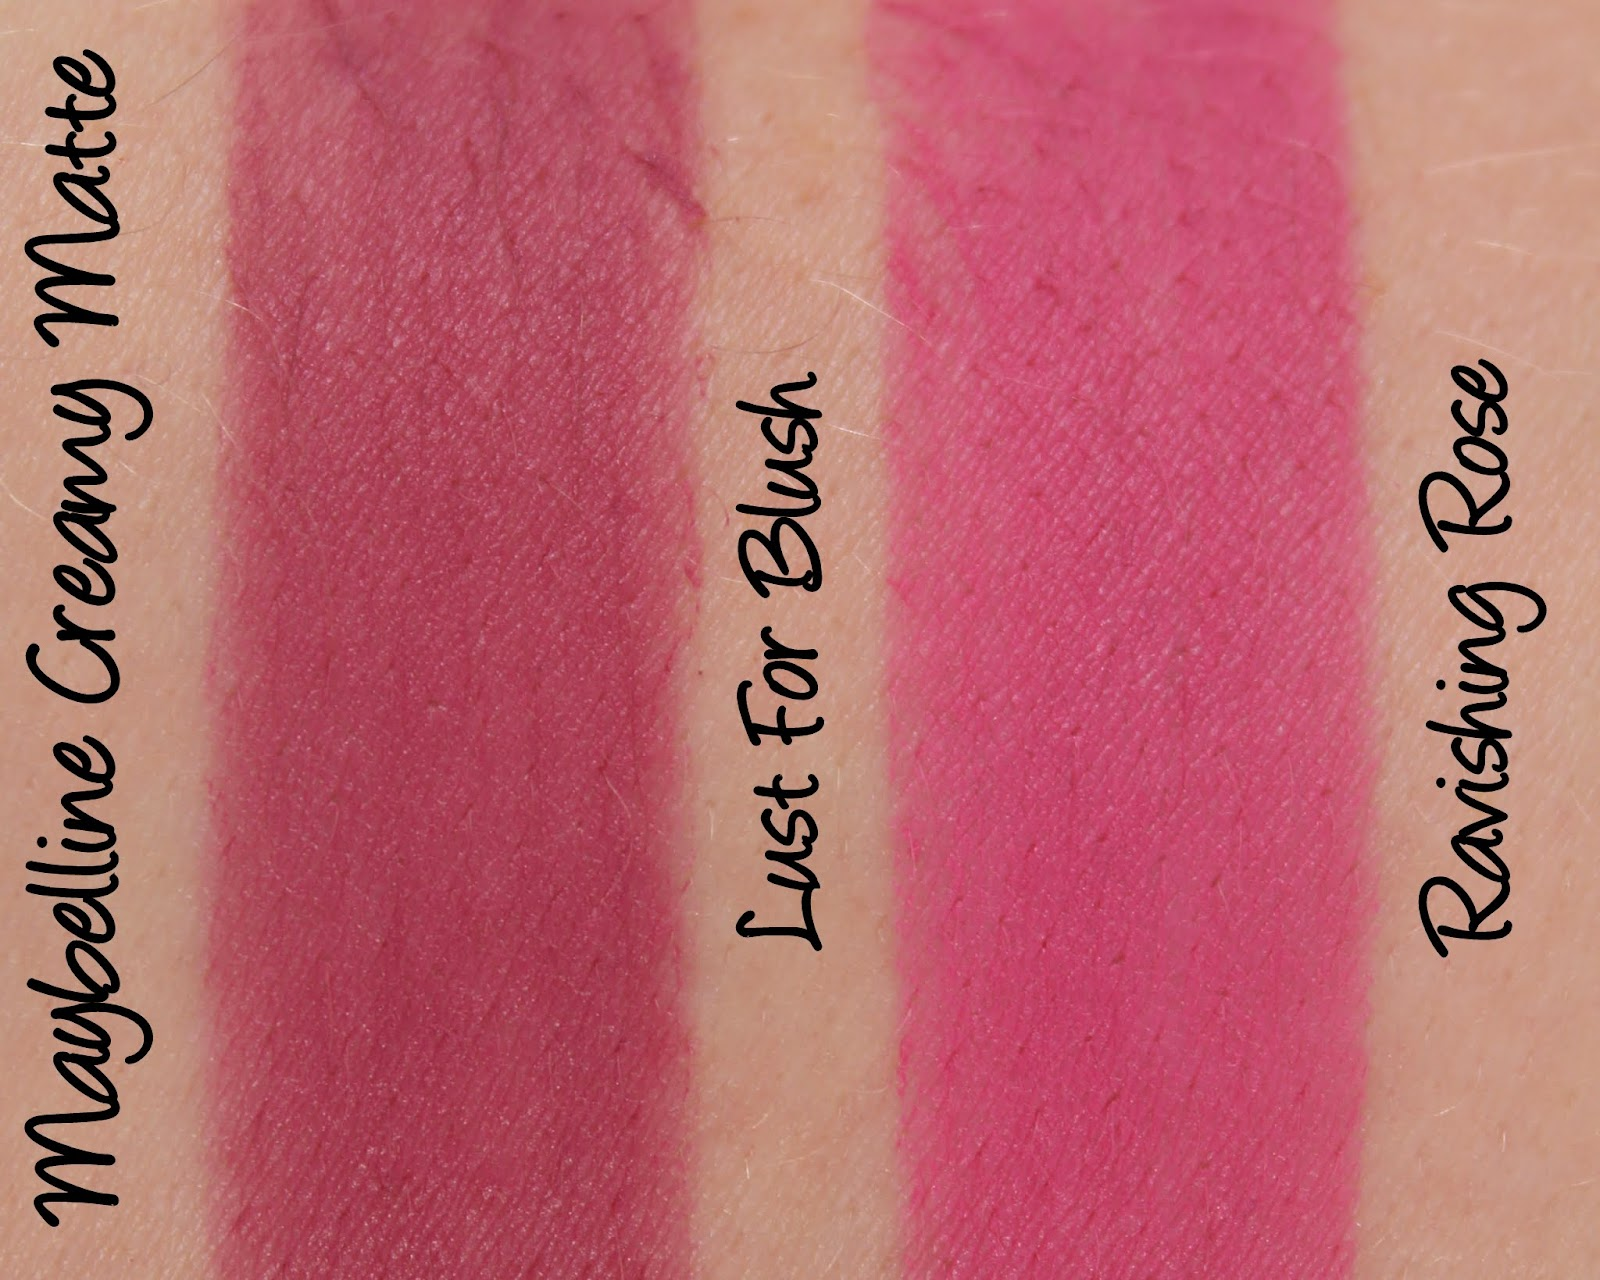 Maybelline Colorsensational Creamy Matte Lipsticks Lust For Blush & Ravishing Rose Swatches & Review